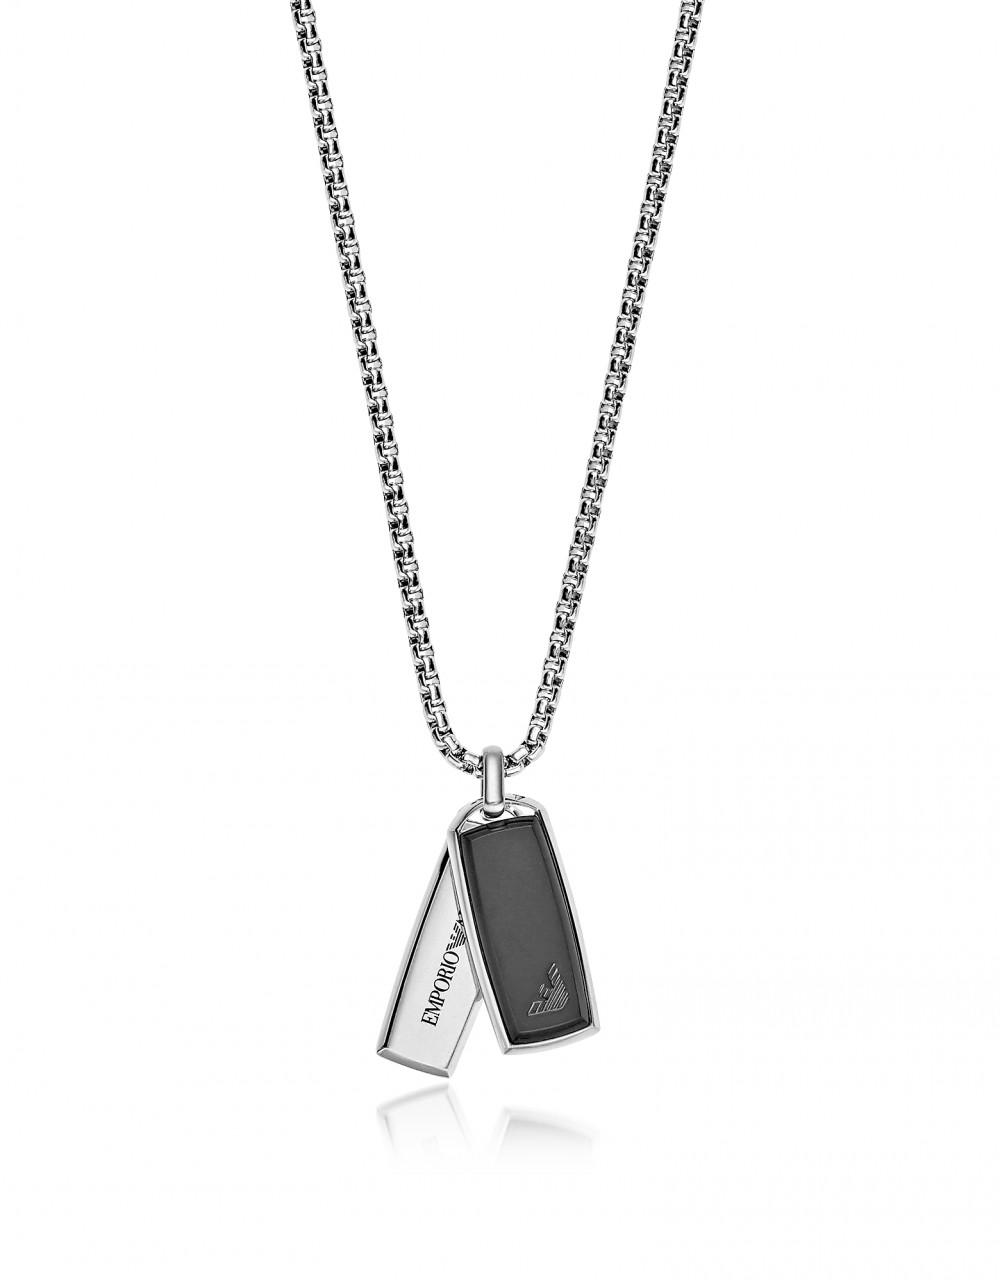 Emporio Armani Men's Necklaces Signature Rectangular Pendants Men's Necklace